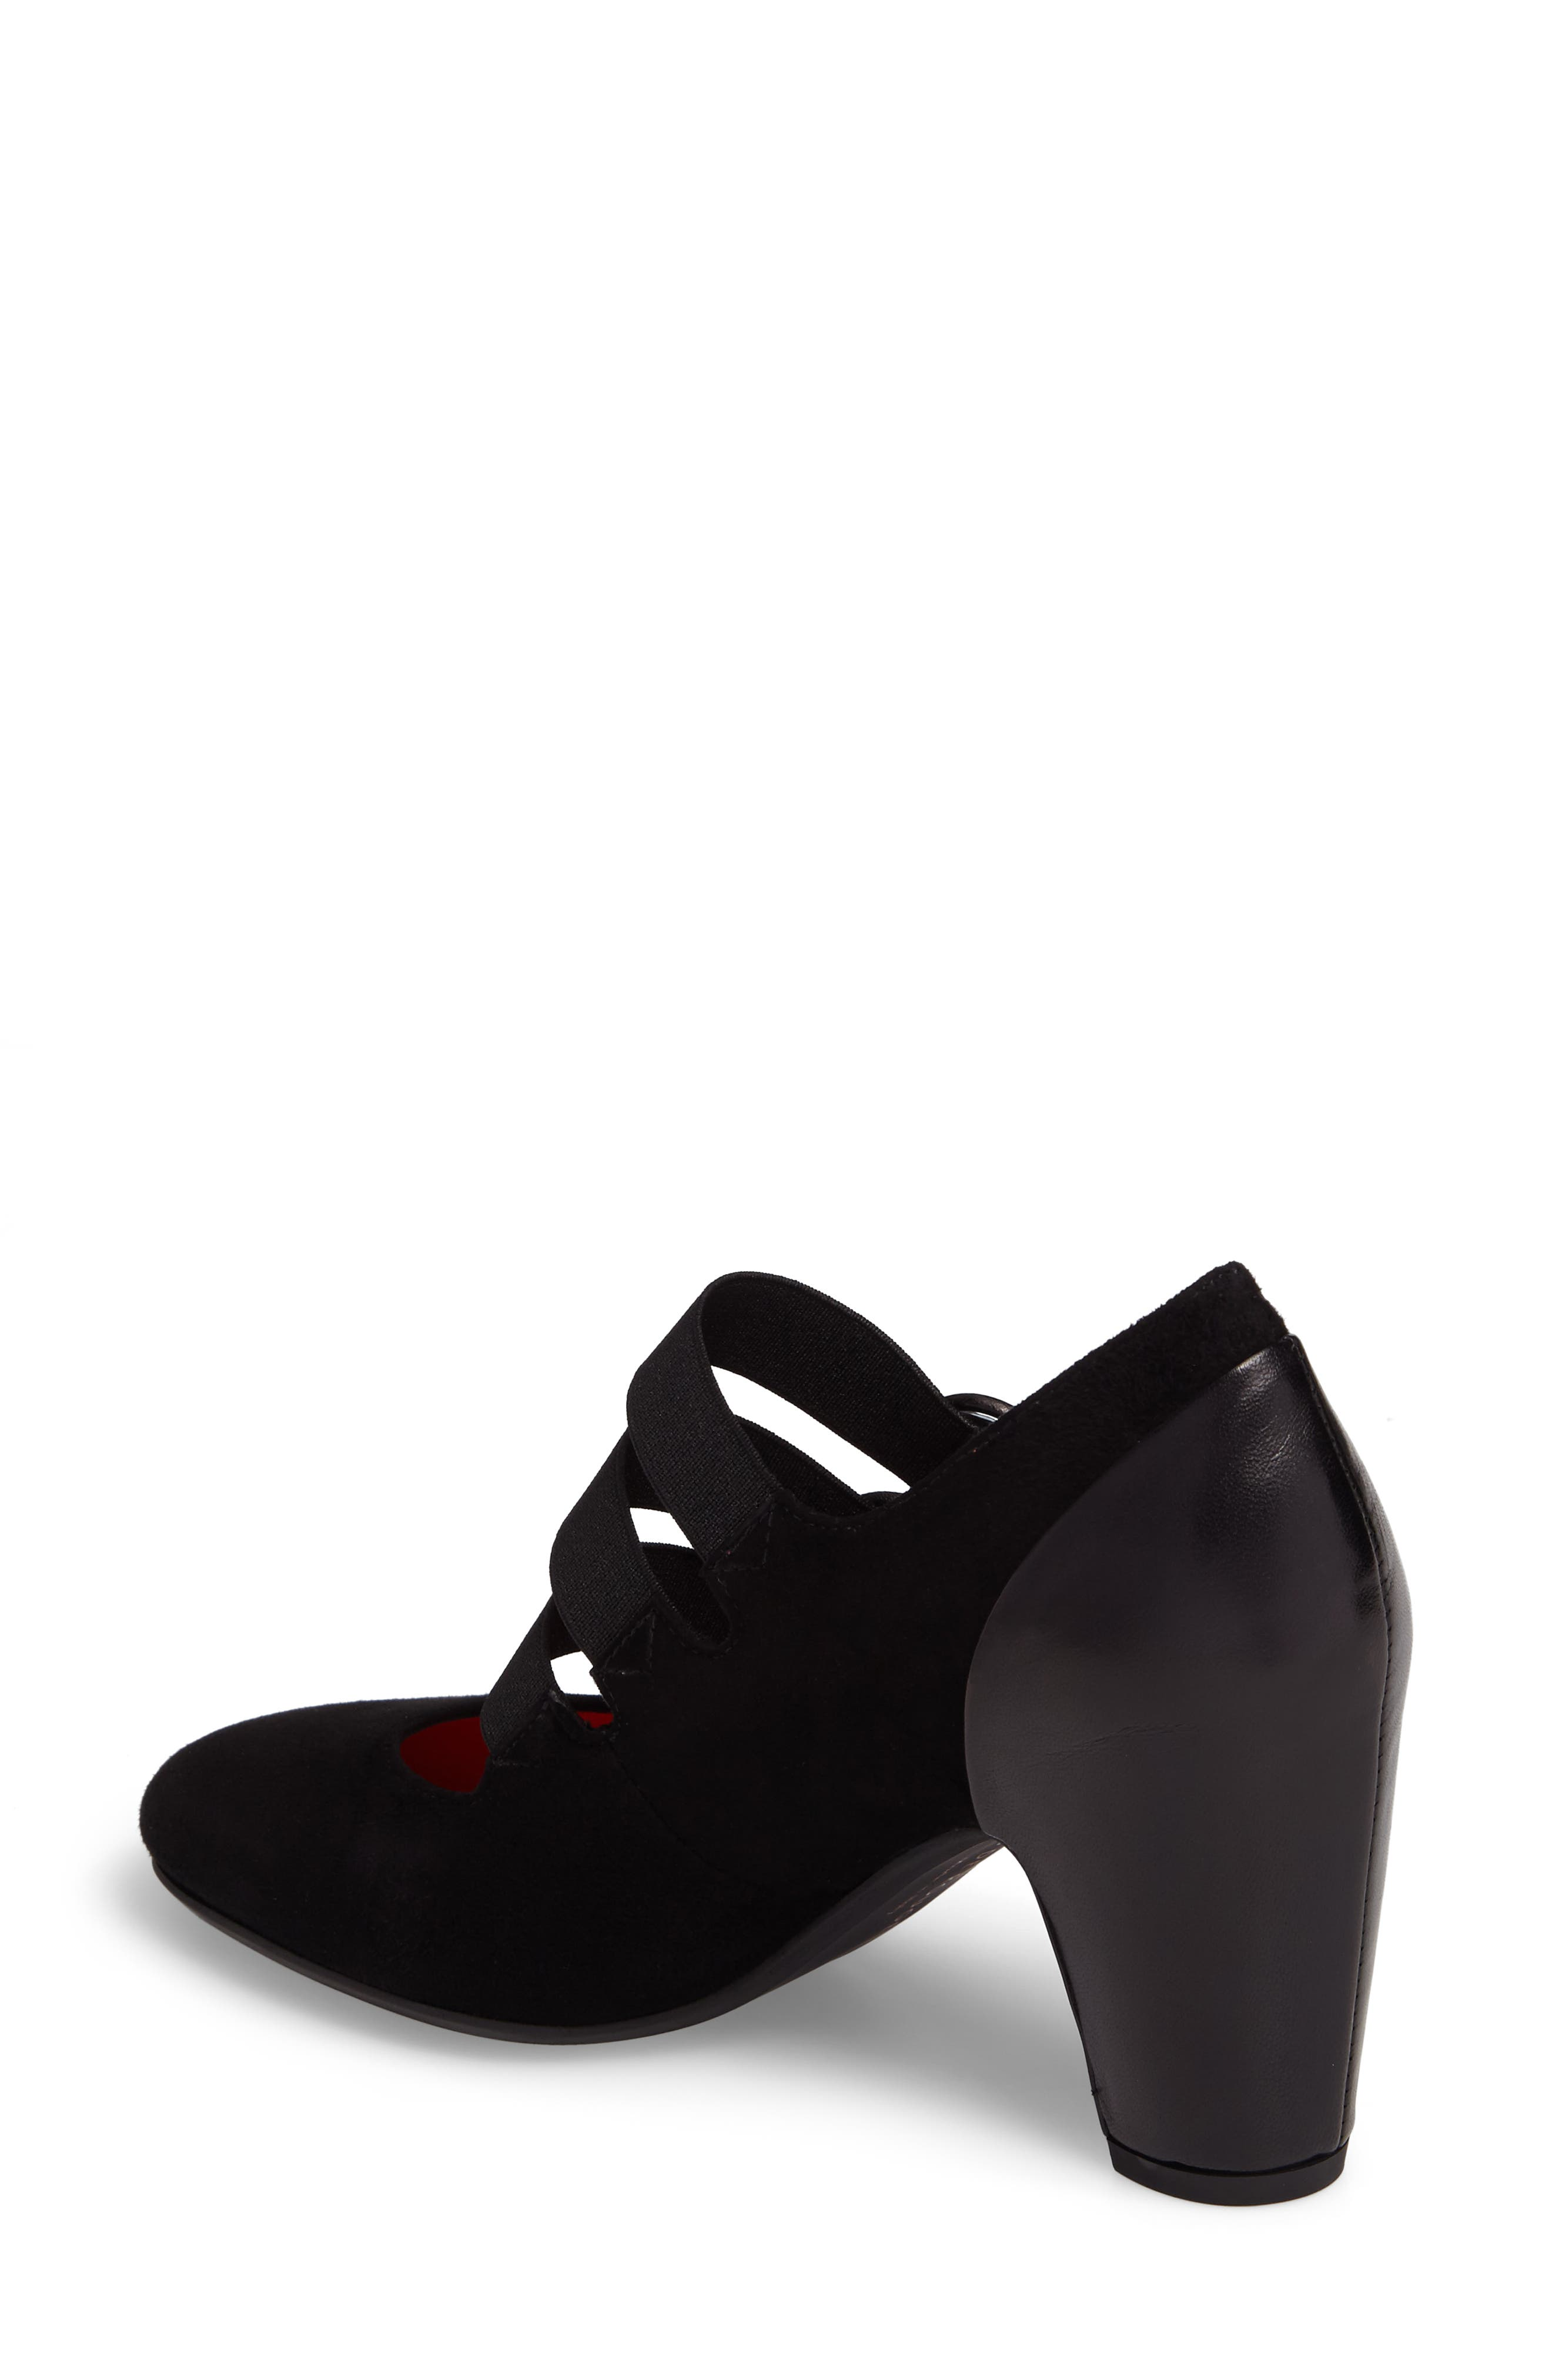 Strappy Mary Jane Pump,                             Alternate thumbnail 2, color,                             Black Suede/ Black Leather